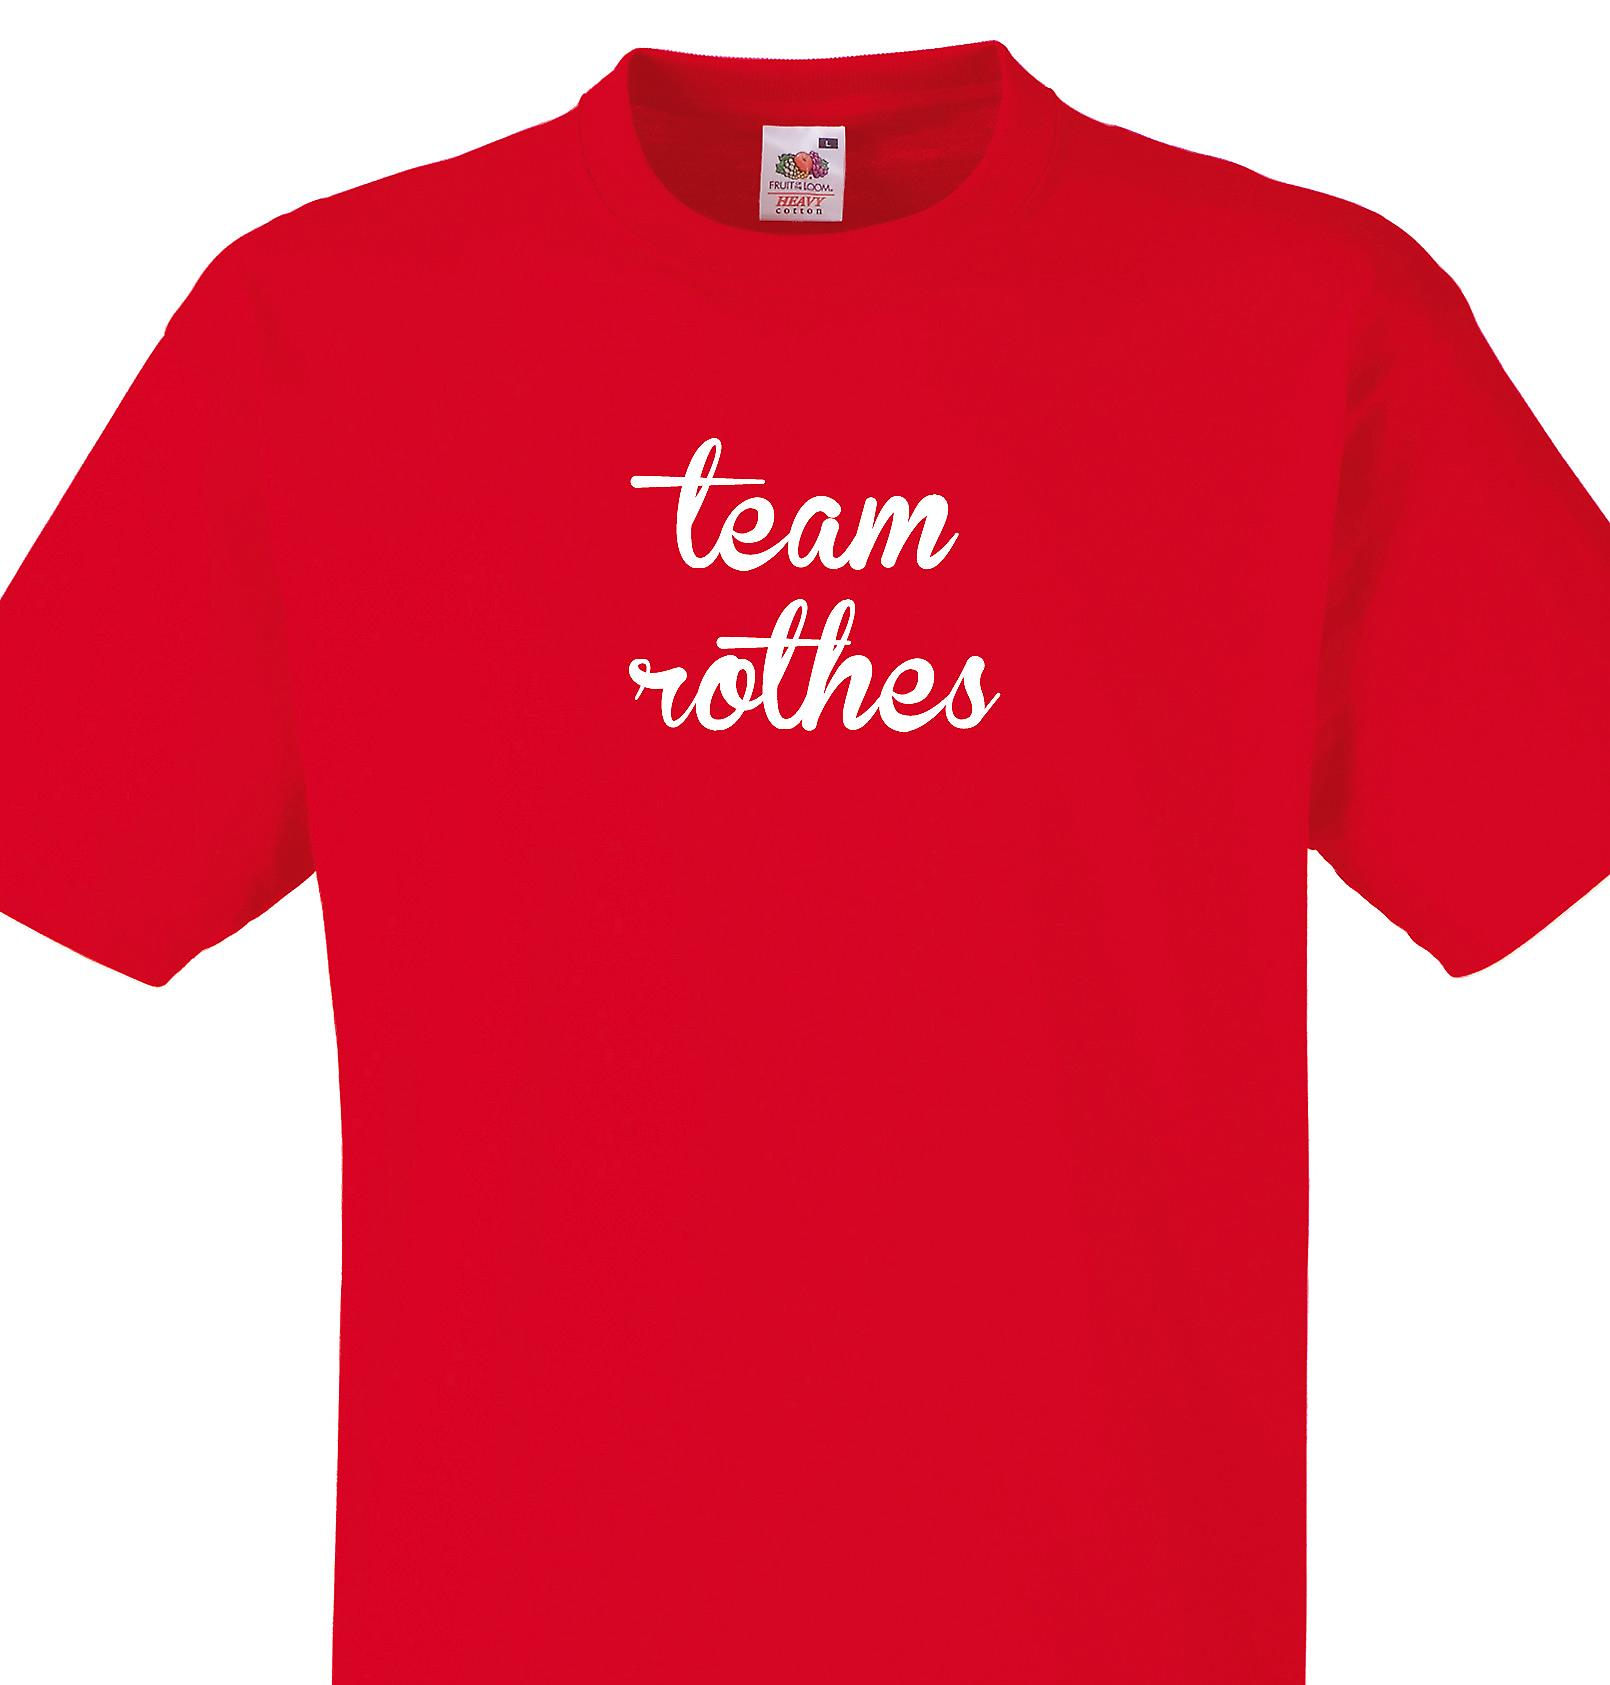 Team Rothes Red T shirt